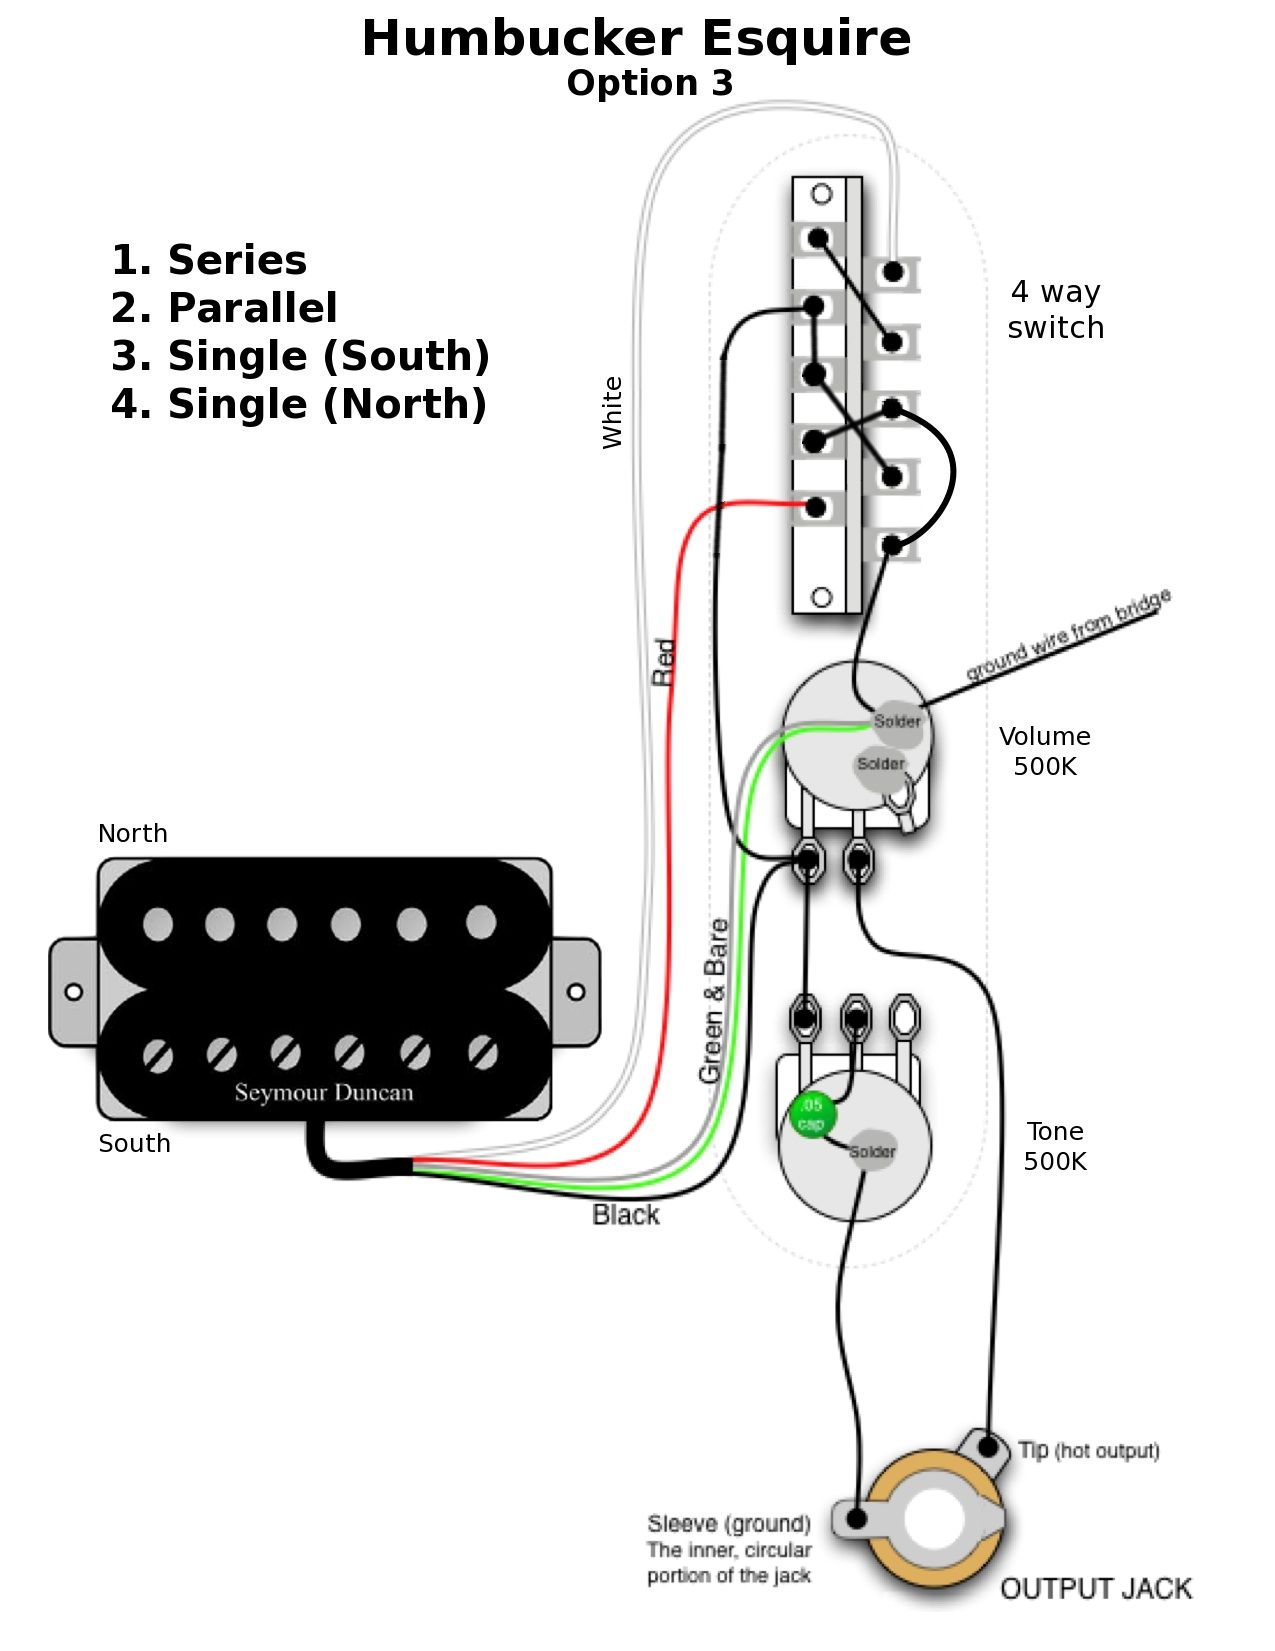 z243s esquire_hb_option_3 guitar wiring diagrams 1 hum 2 single guitar discover your fender esquire wiring diagram at arjmand.co